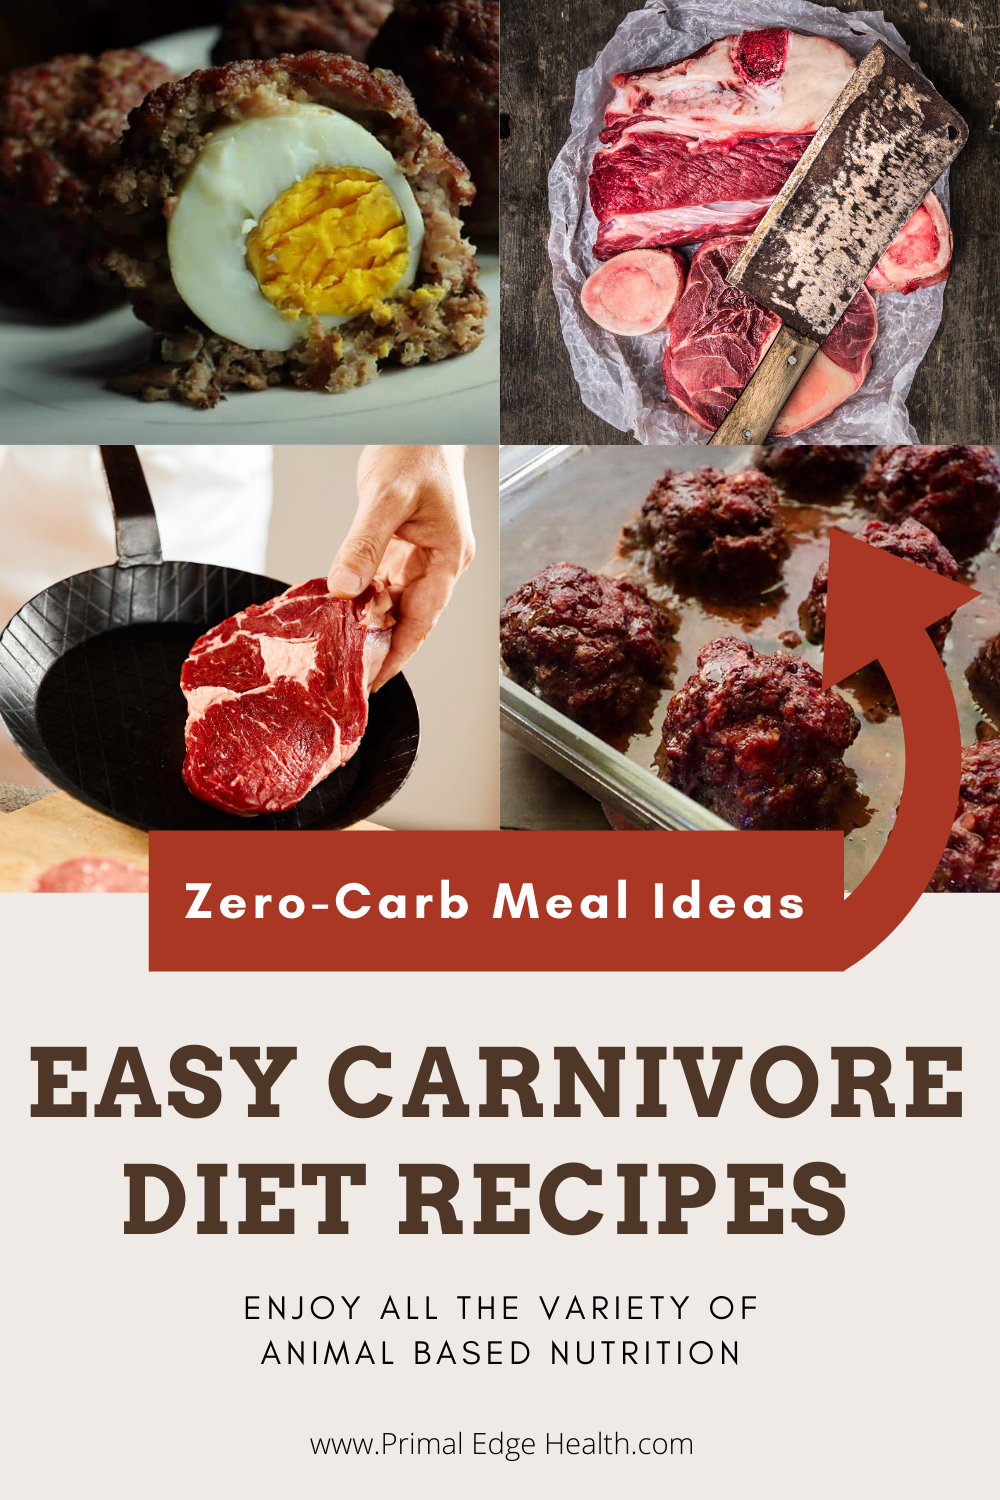 Make The Most Of Your Carnivore Diet With Delicious Easy To Make Recipes And Thrive With A Variety Of Animal Based Meal Ideas In 2020 Meat Diet Diet Recipes Recipes